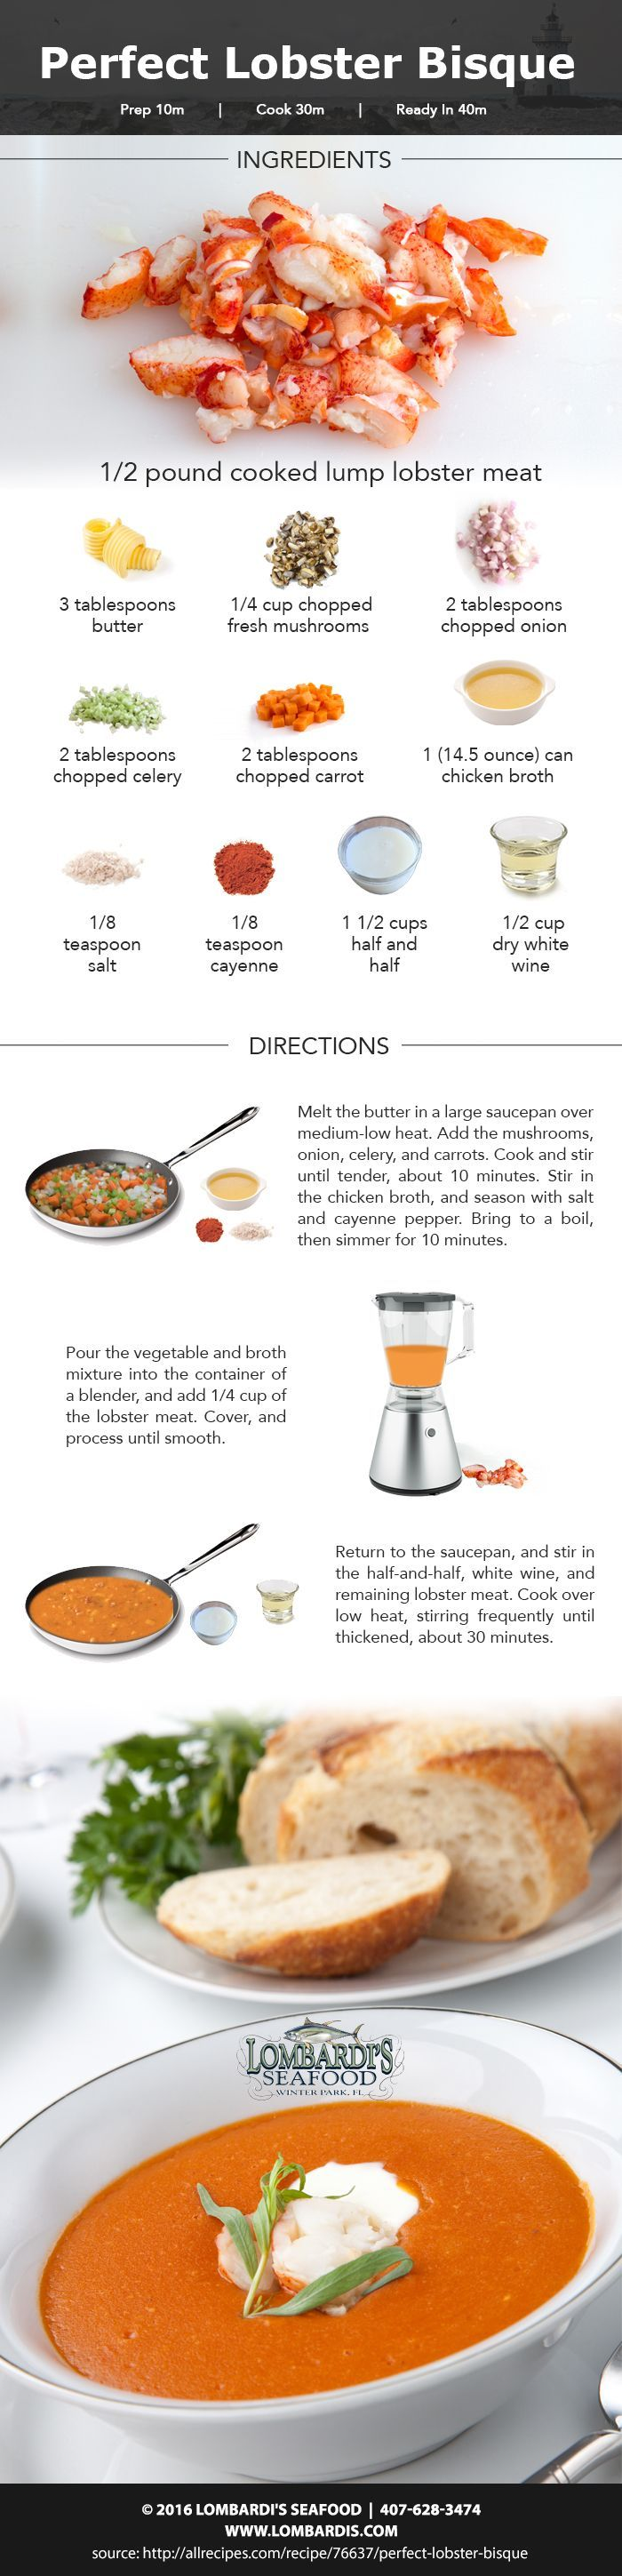 Lombardi's, who has the best Orlando seafood, shares a lobster bisque recipe that is sure to delight everyone's taste buds. Stop by today for your ingredients!